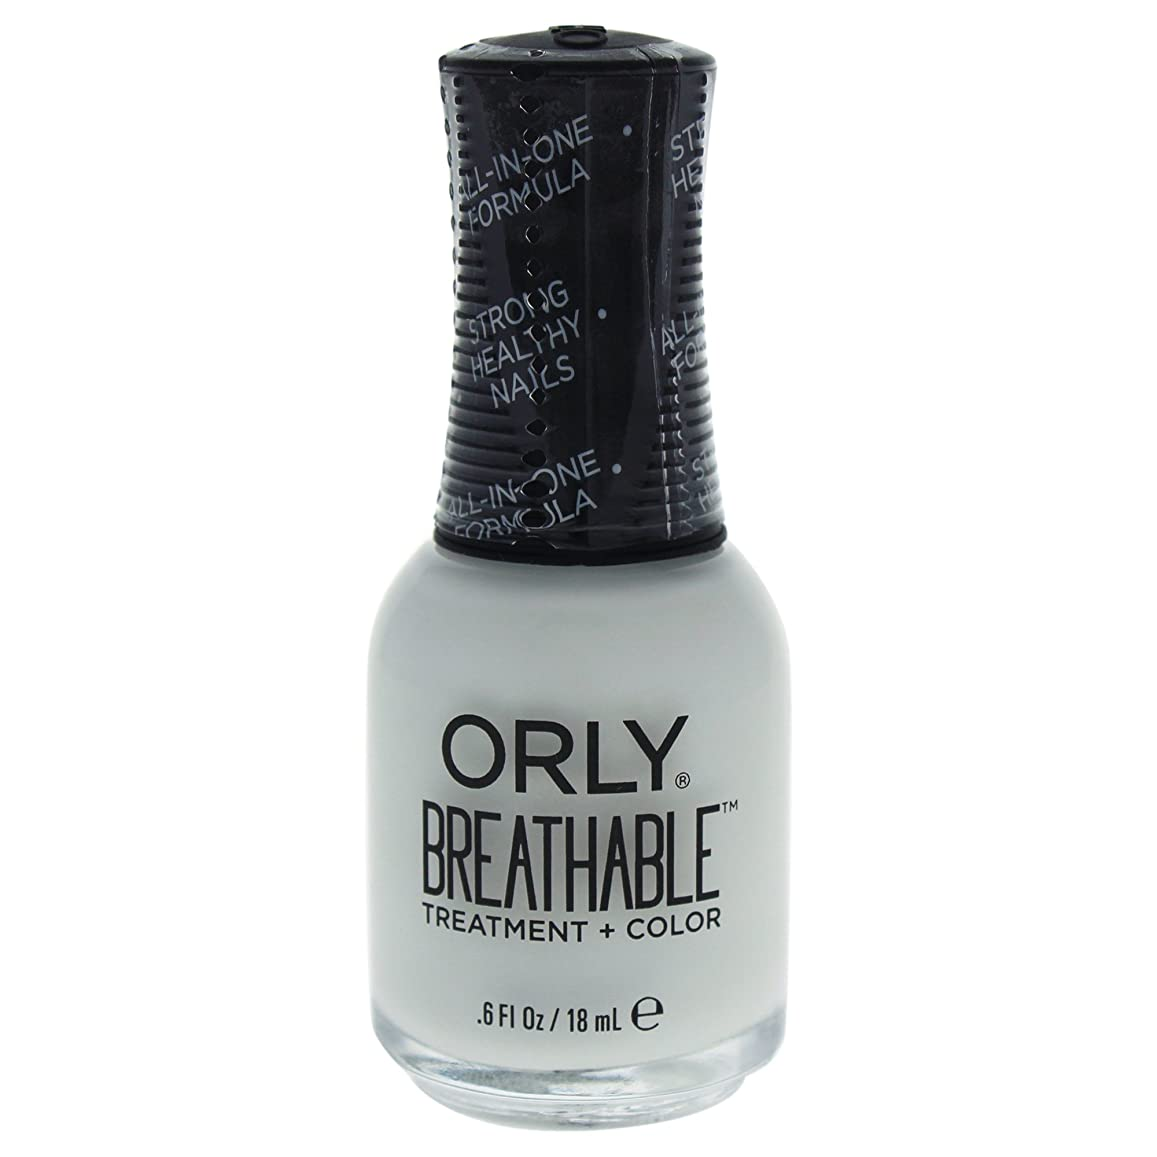 デクリメント狐に向けて出発Orly Breathable Treatment + Color Nail Lacquer - White Tips - 0.6oz / 18ml